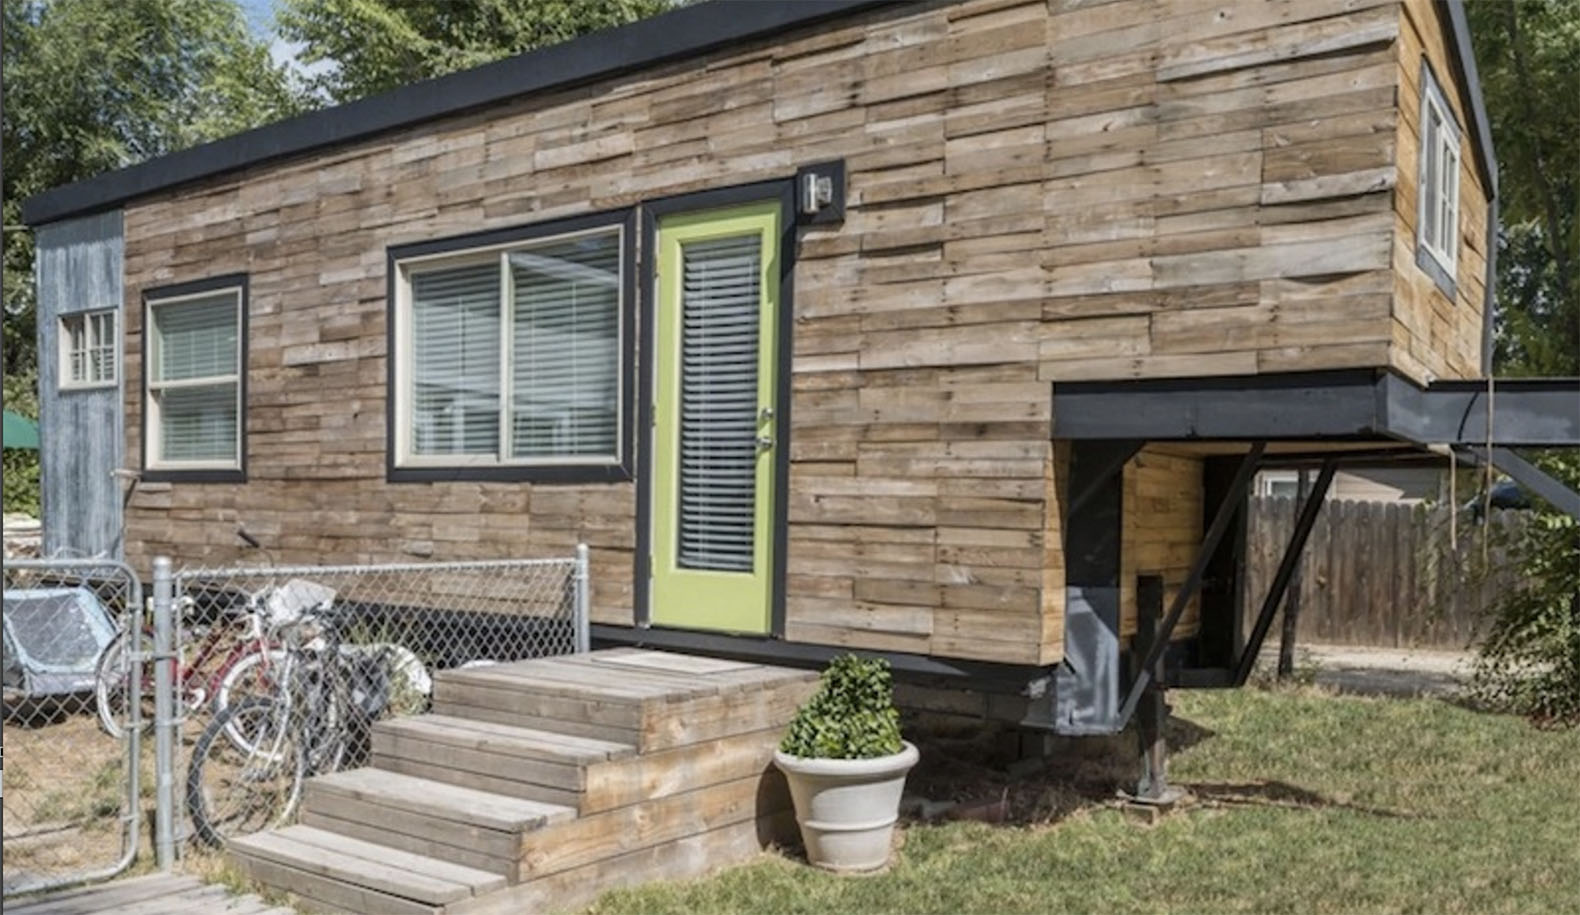 Idaho Mom Built A Tiny House For Her Family And Their Great Dane